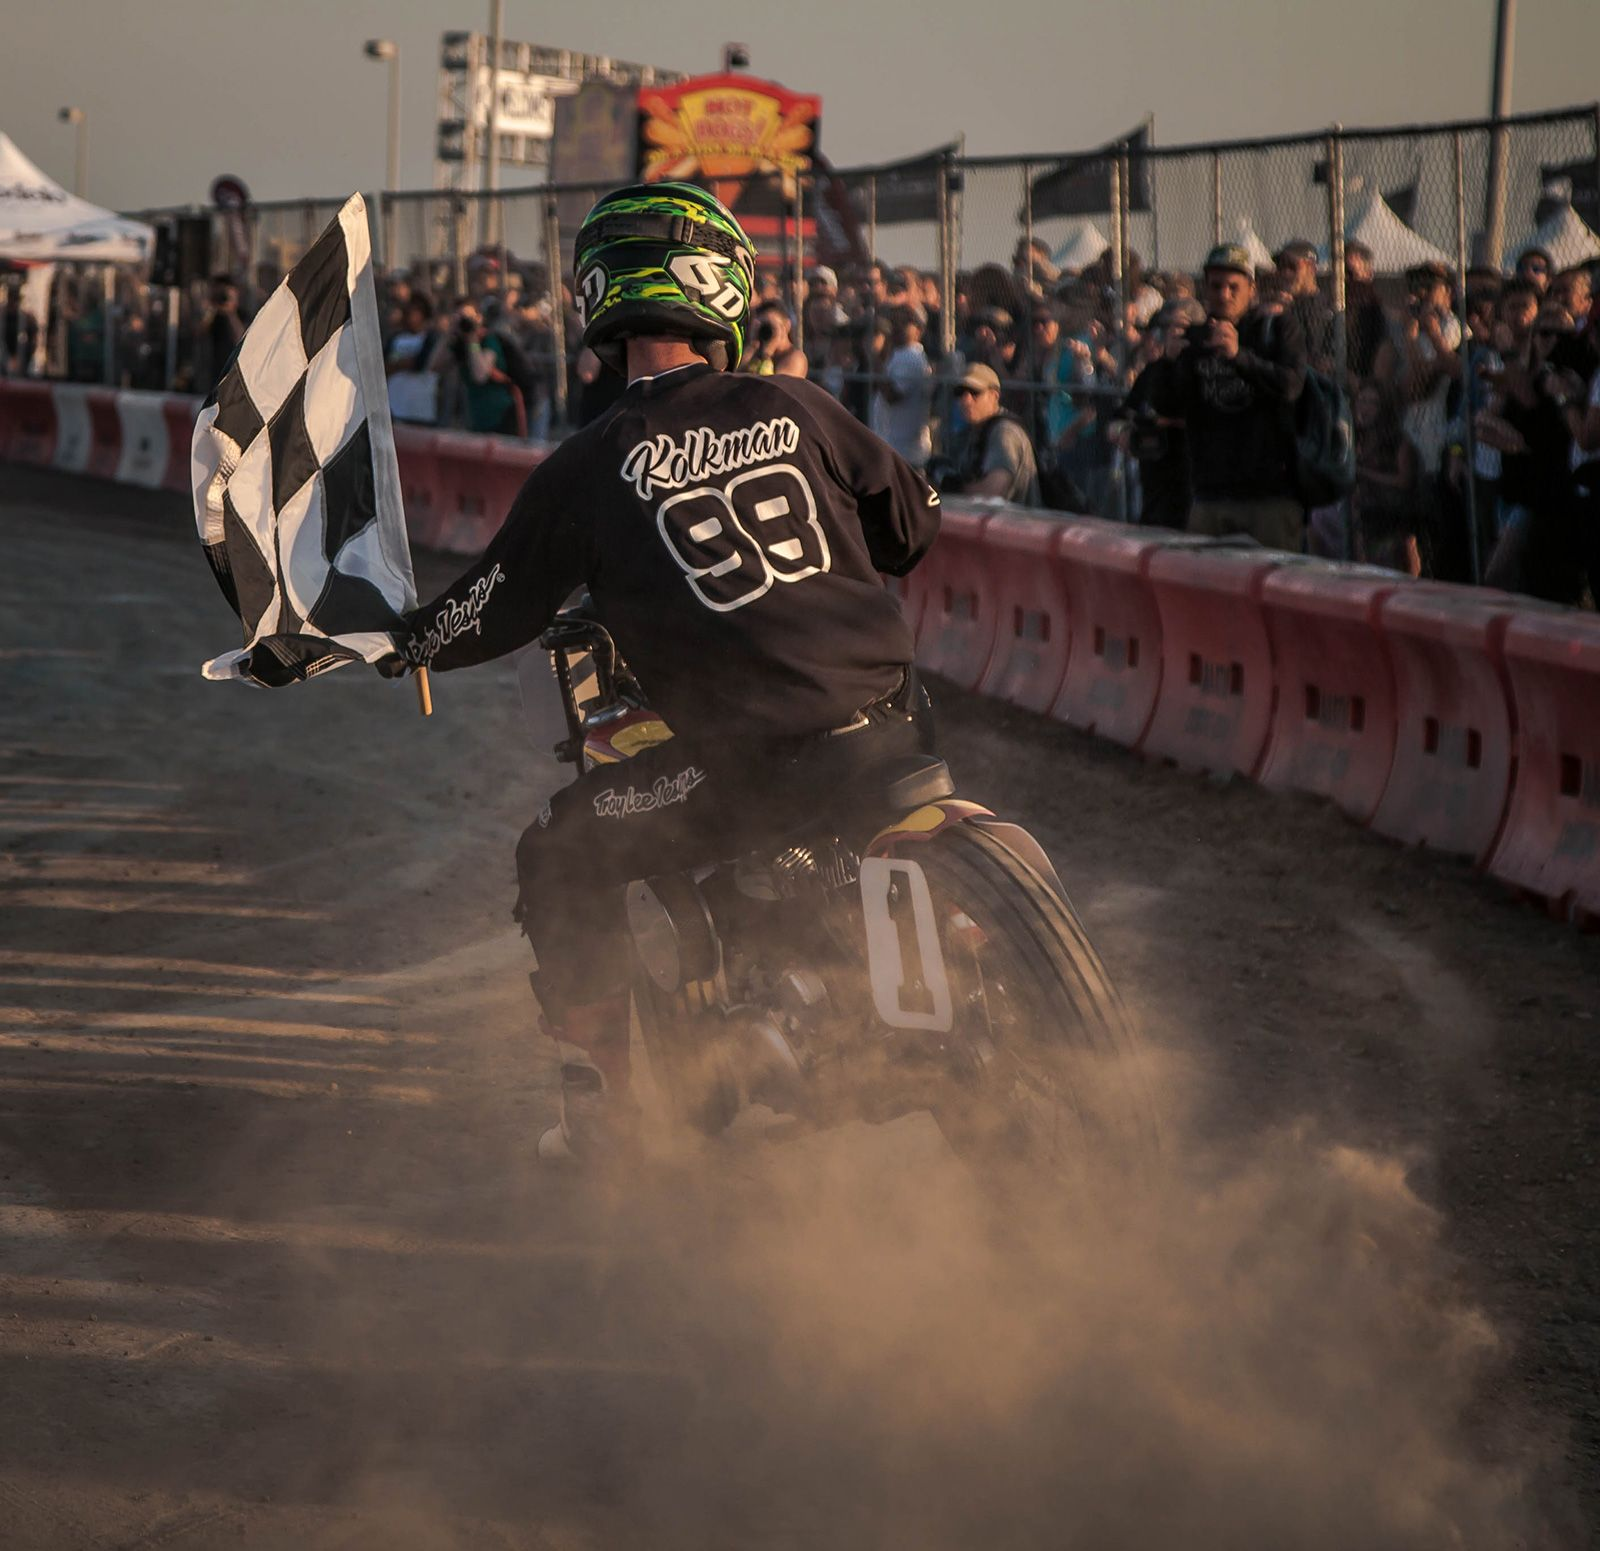 The 2017 Moto Beach Classic At Bolsa Chica With Images Beach Classic Street Bikes